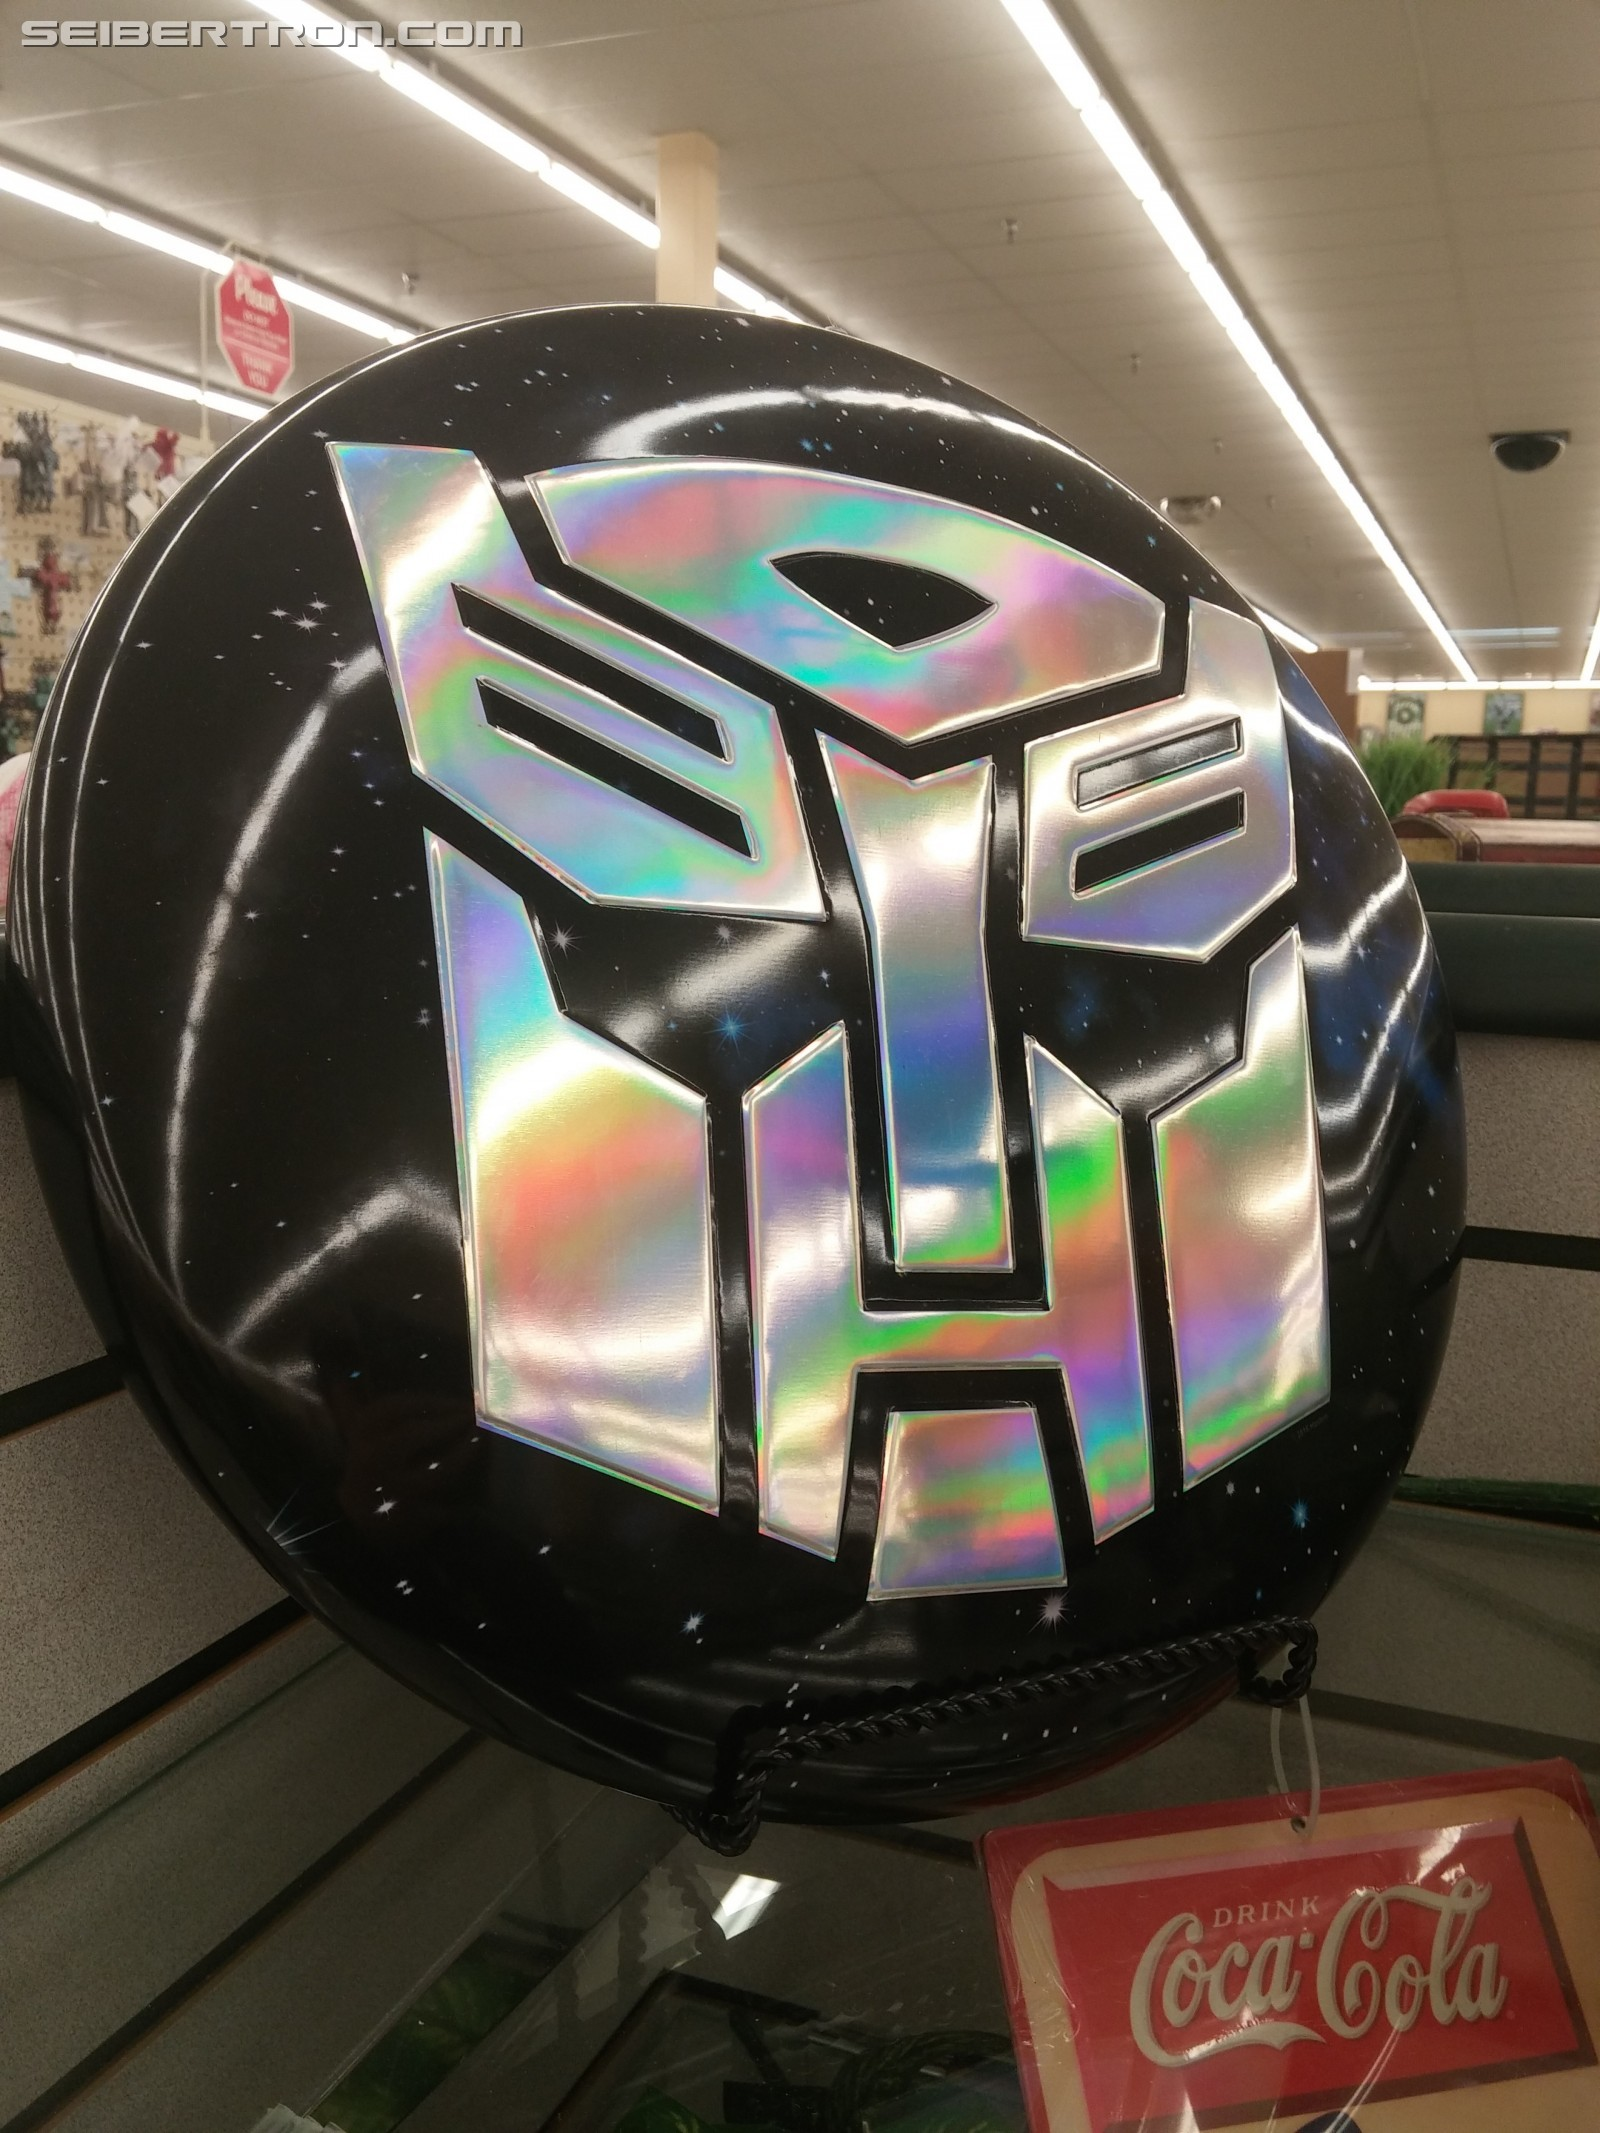 More Transformers Themed Decor Found At Hobby Lobby